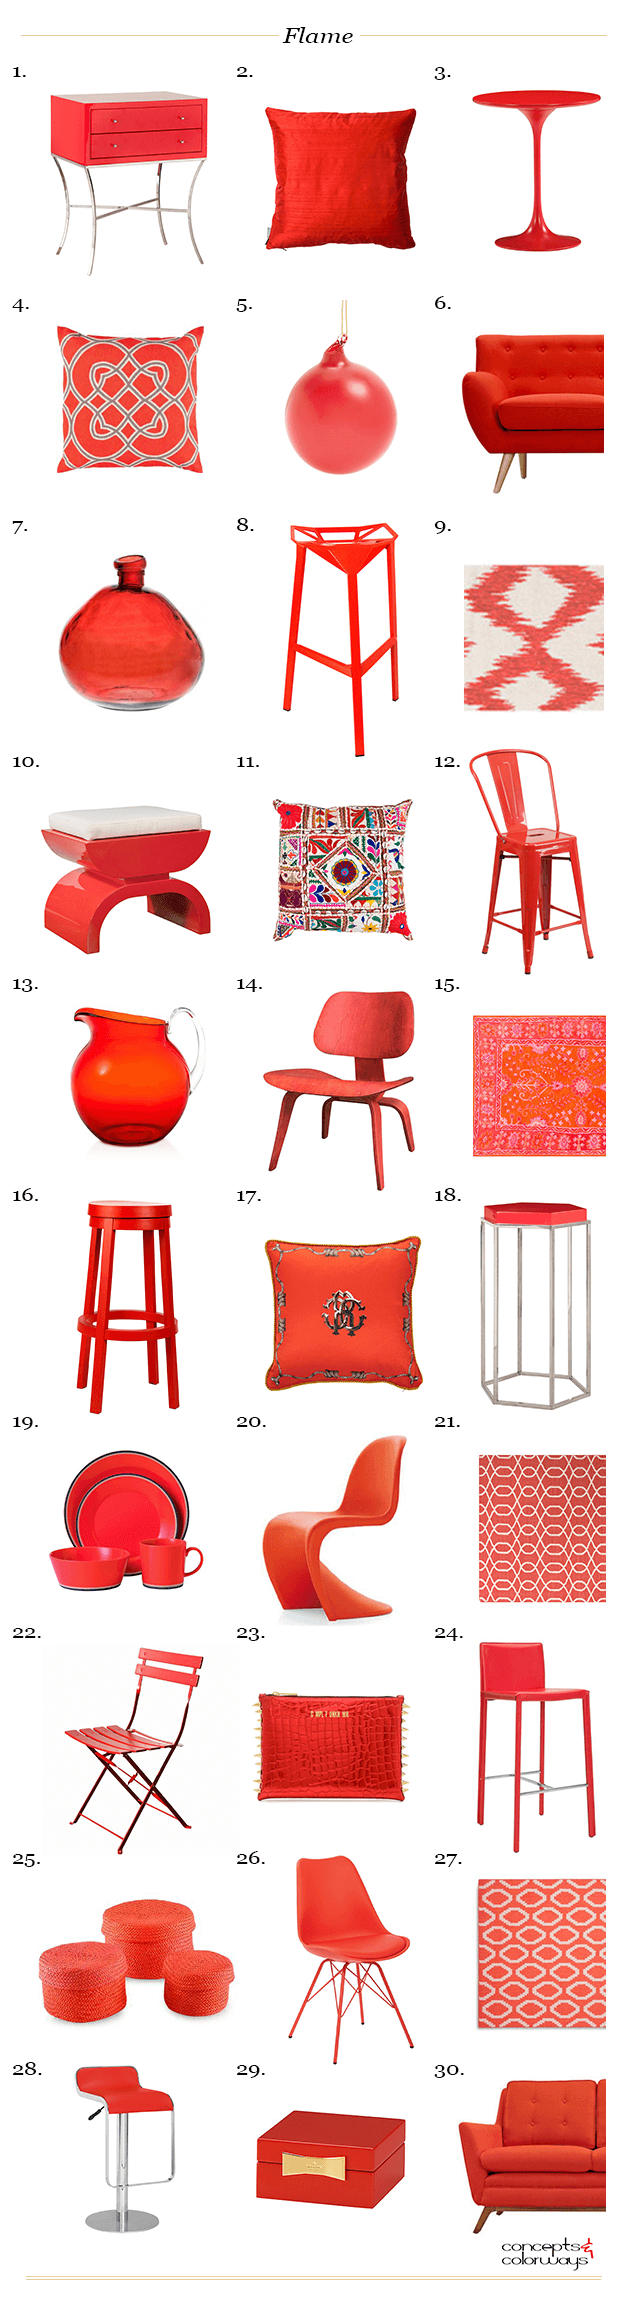 pantone flame interior design product roundup